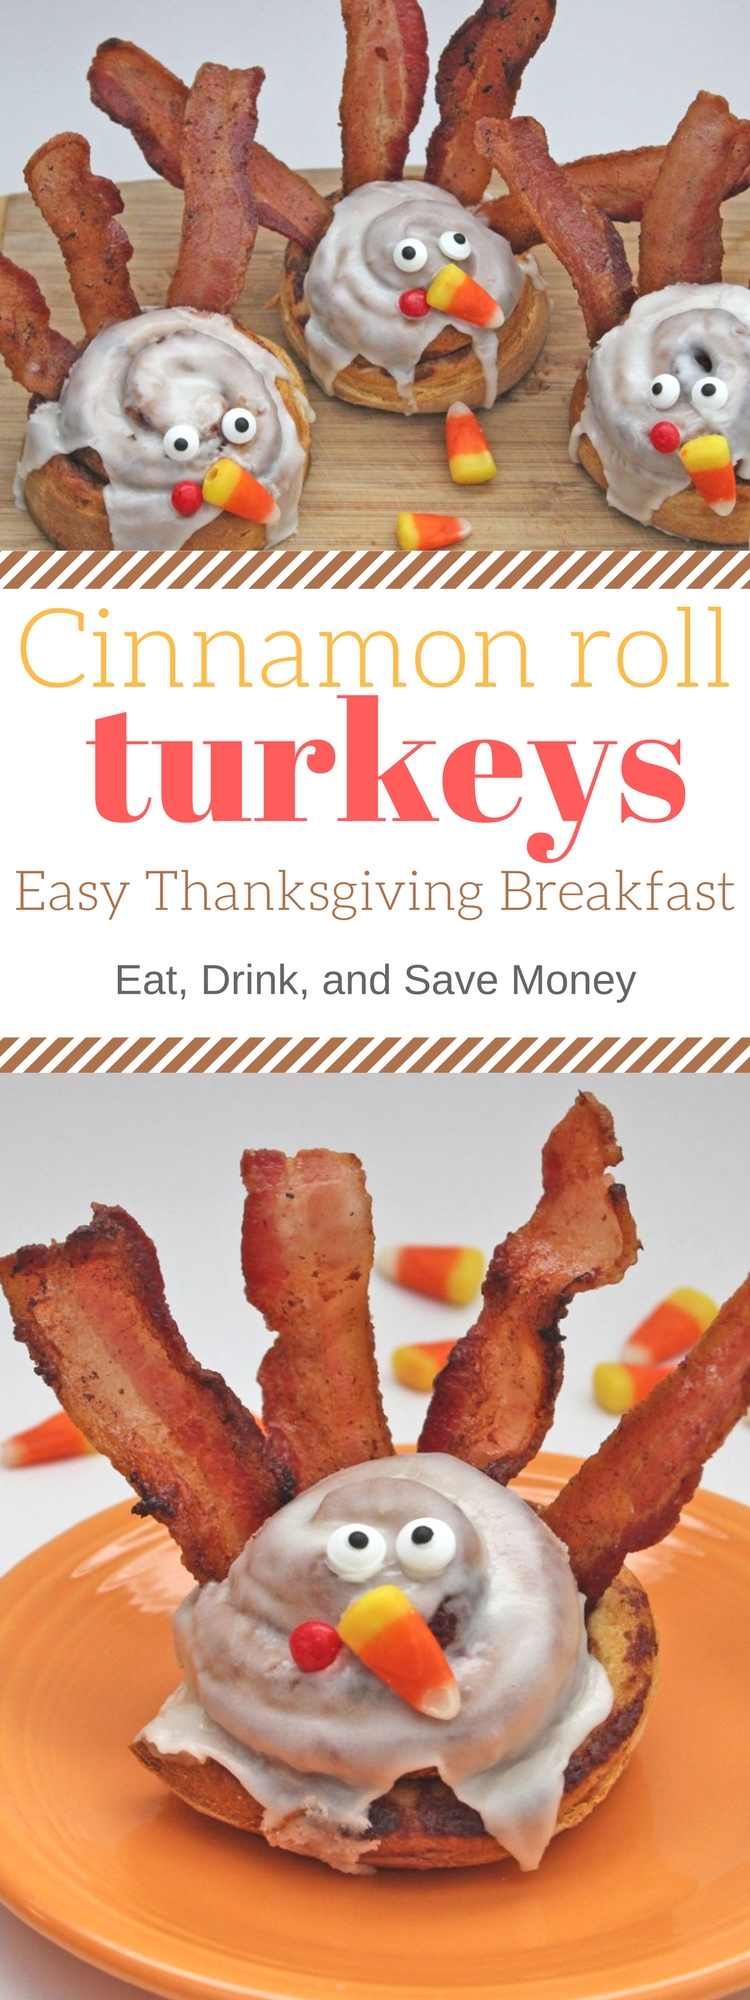 Check out this easy Thanksgiving breakfast. Create a new kid friendly Thanksgiving traditions with these cinnamon roll turkeys.